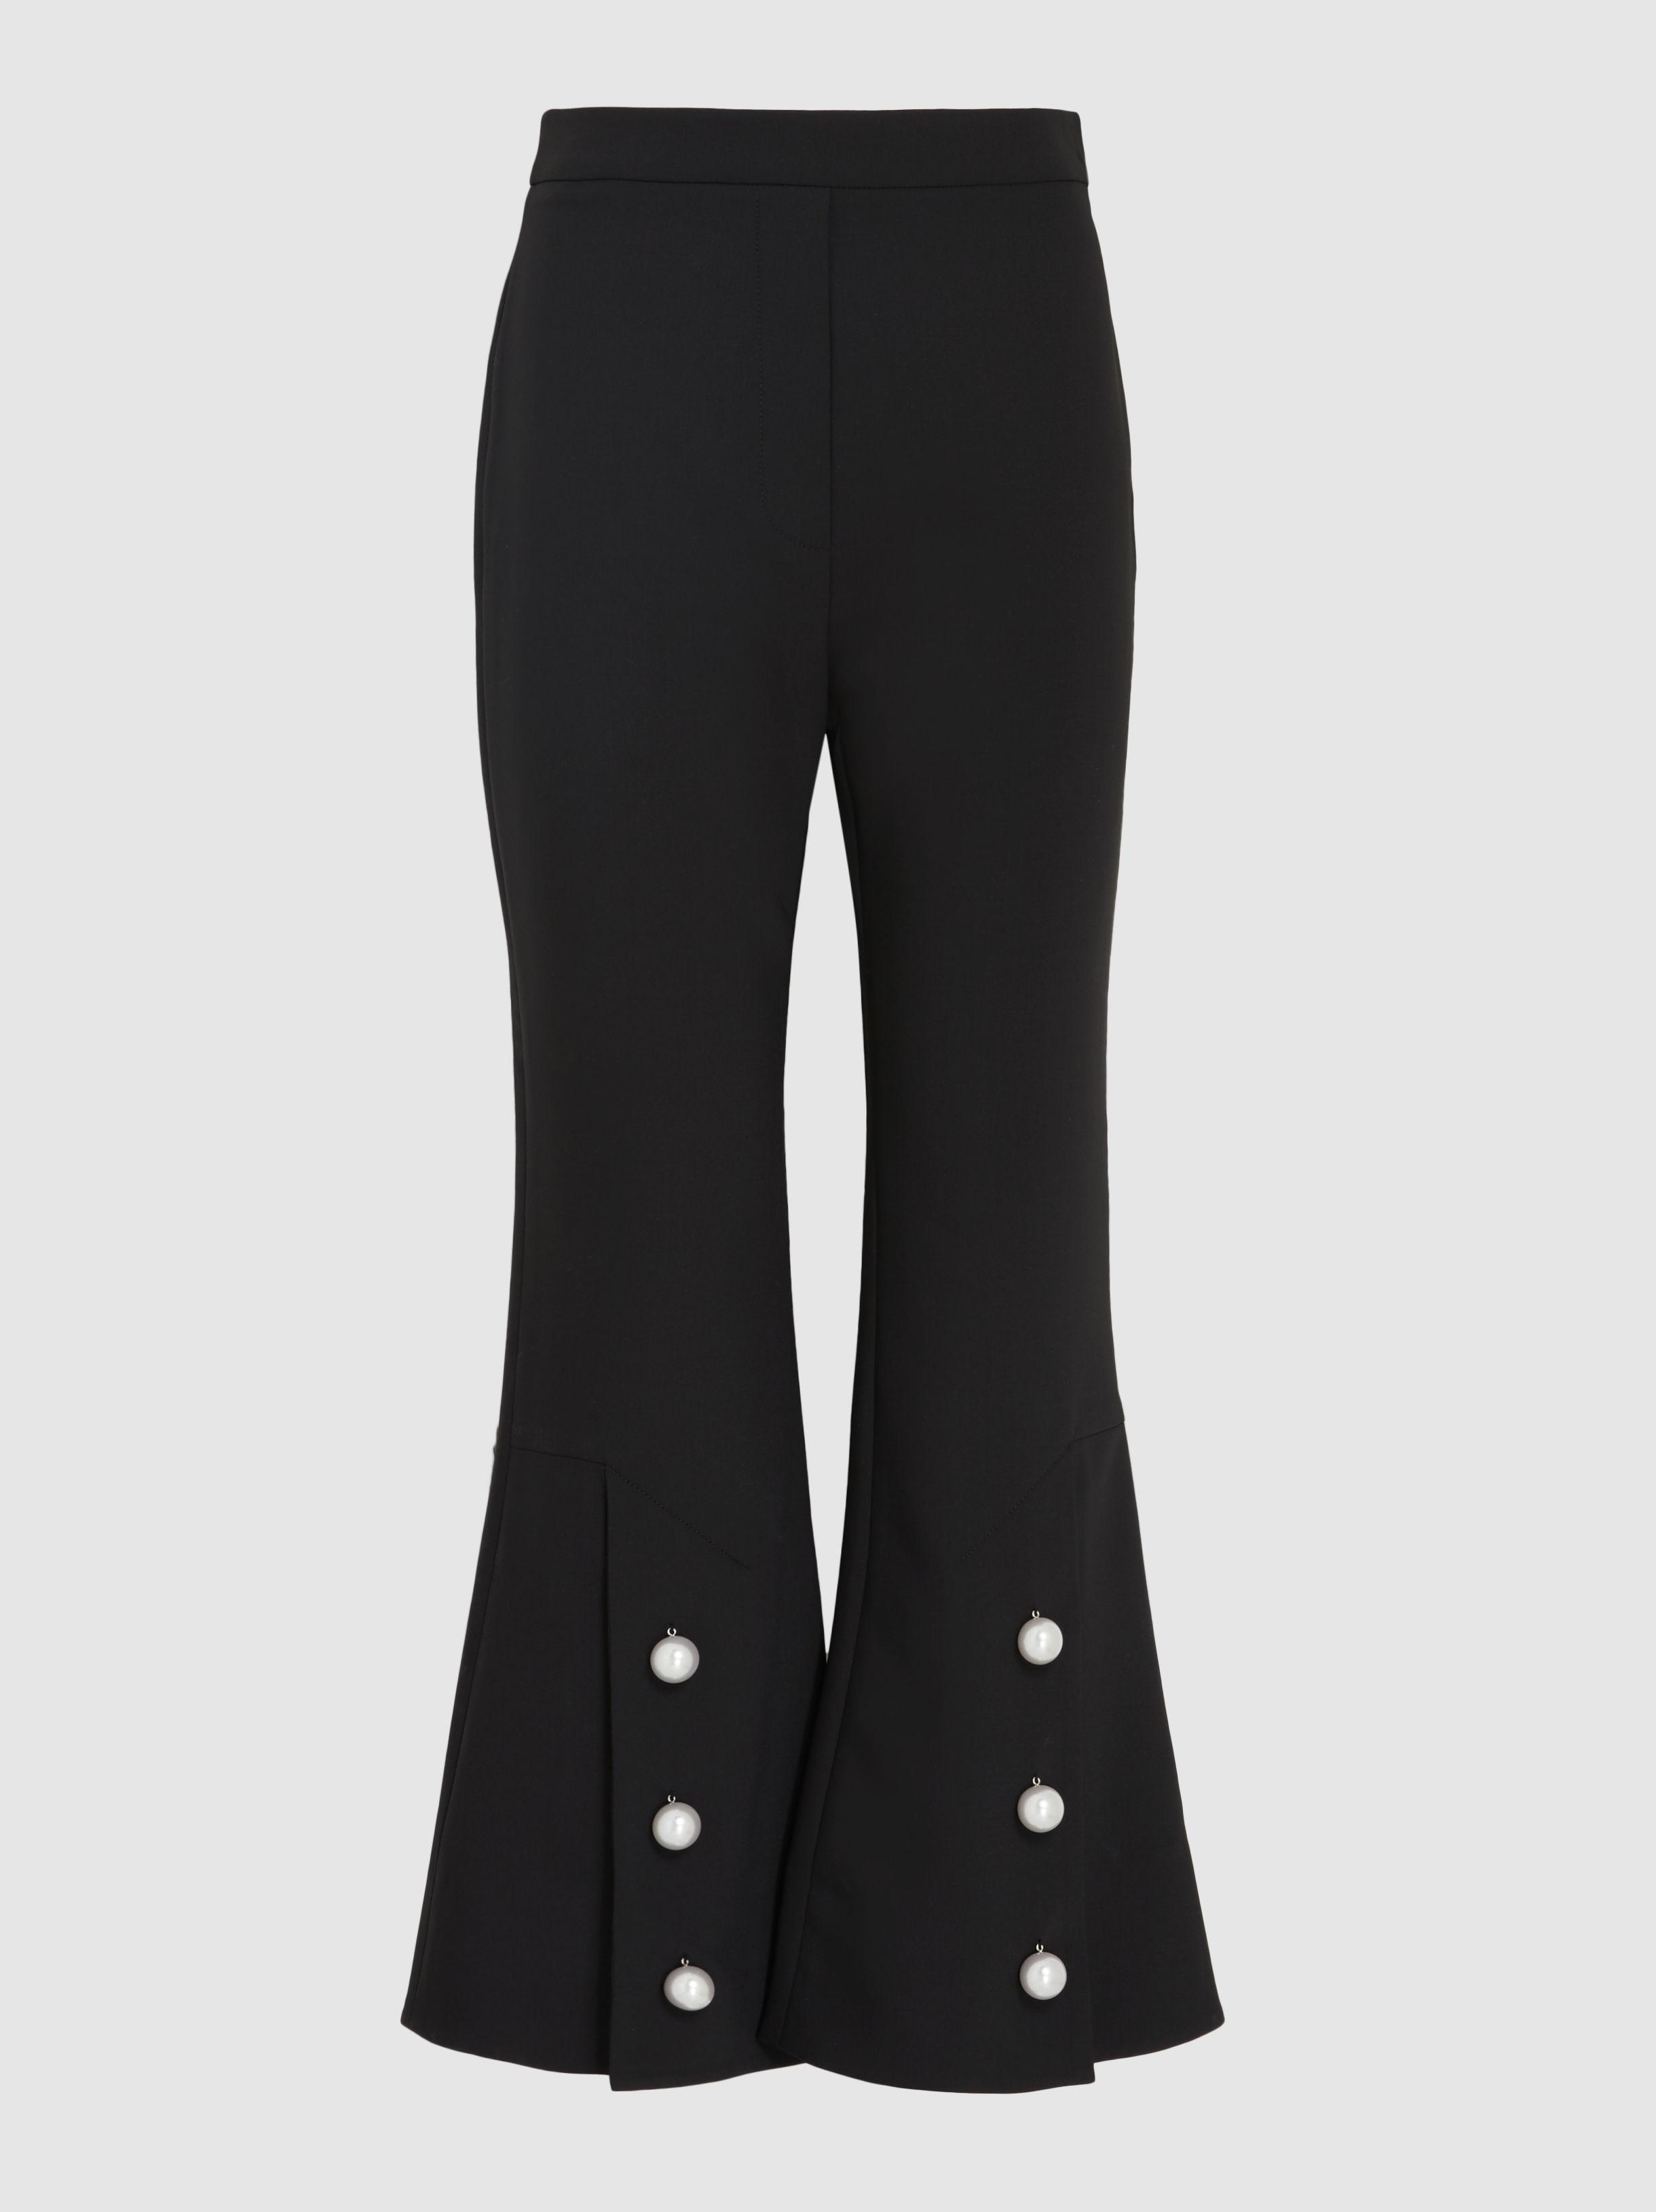 Ellery Woman Faux Pearl-embellished Woven Flared Pants Black Size 8 Ellery 8DE0i